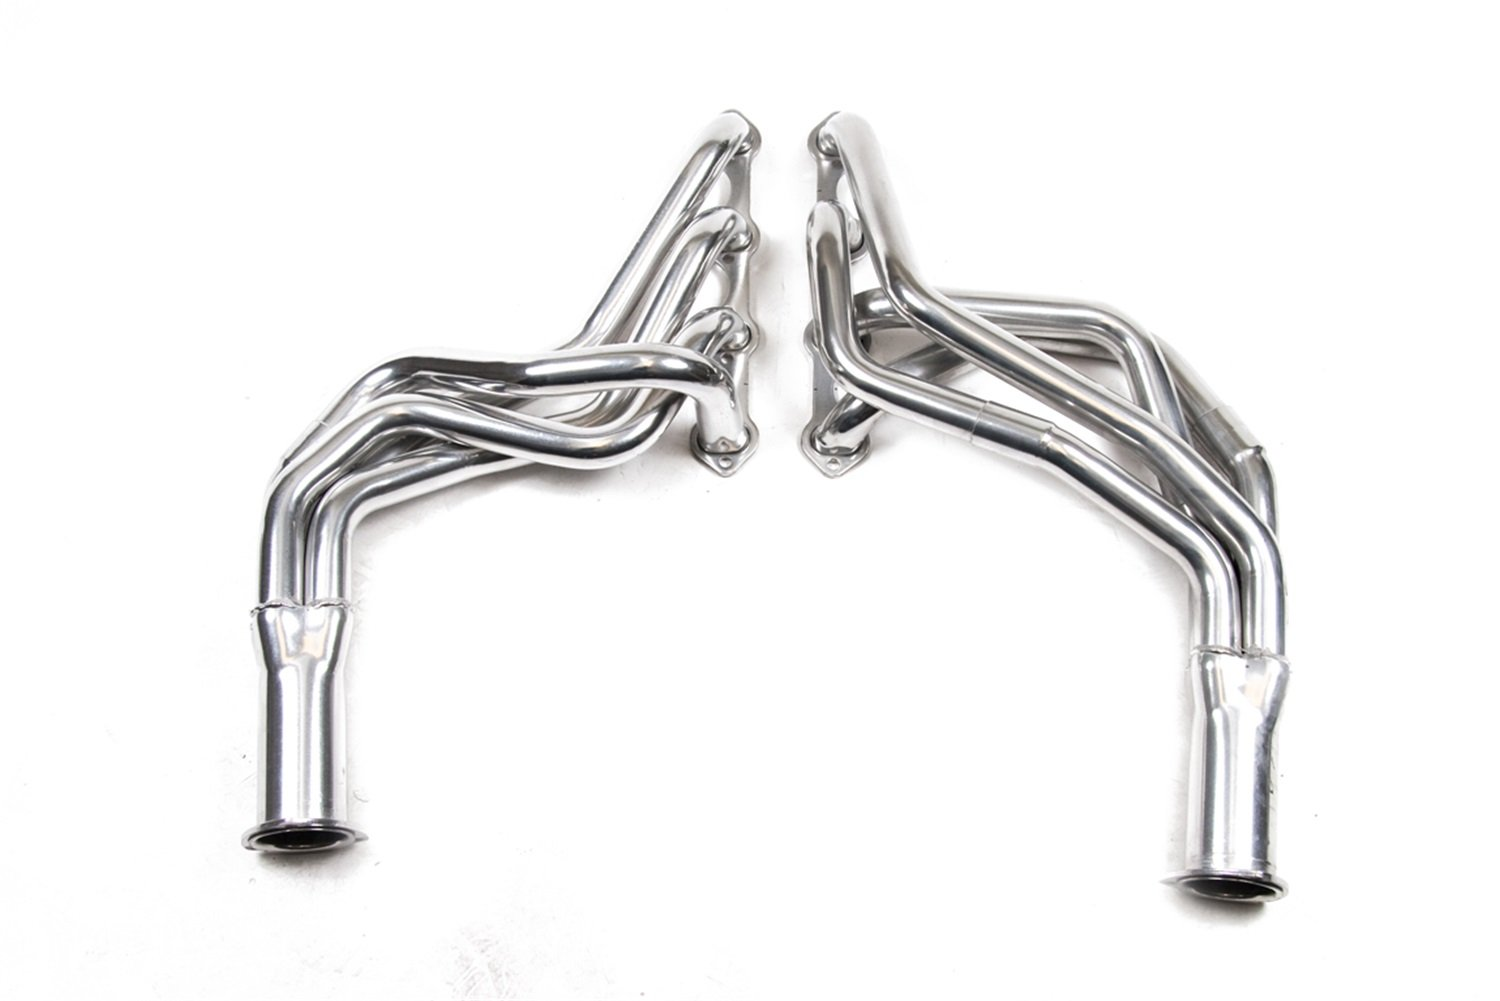 Flowtech Flt Ceramic Headers